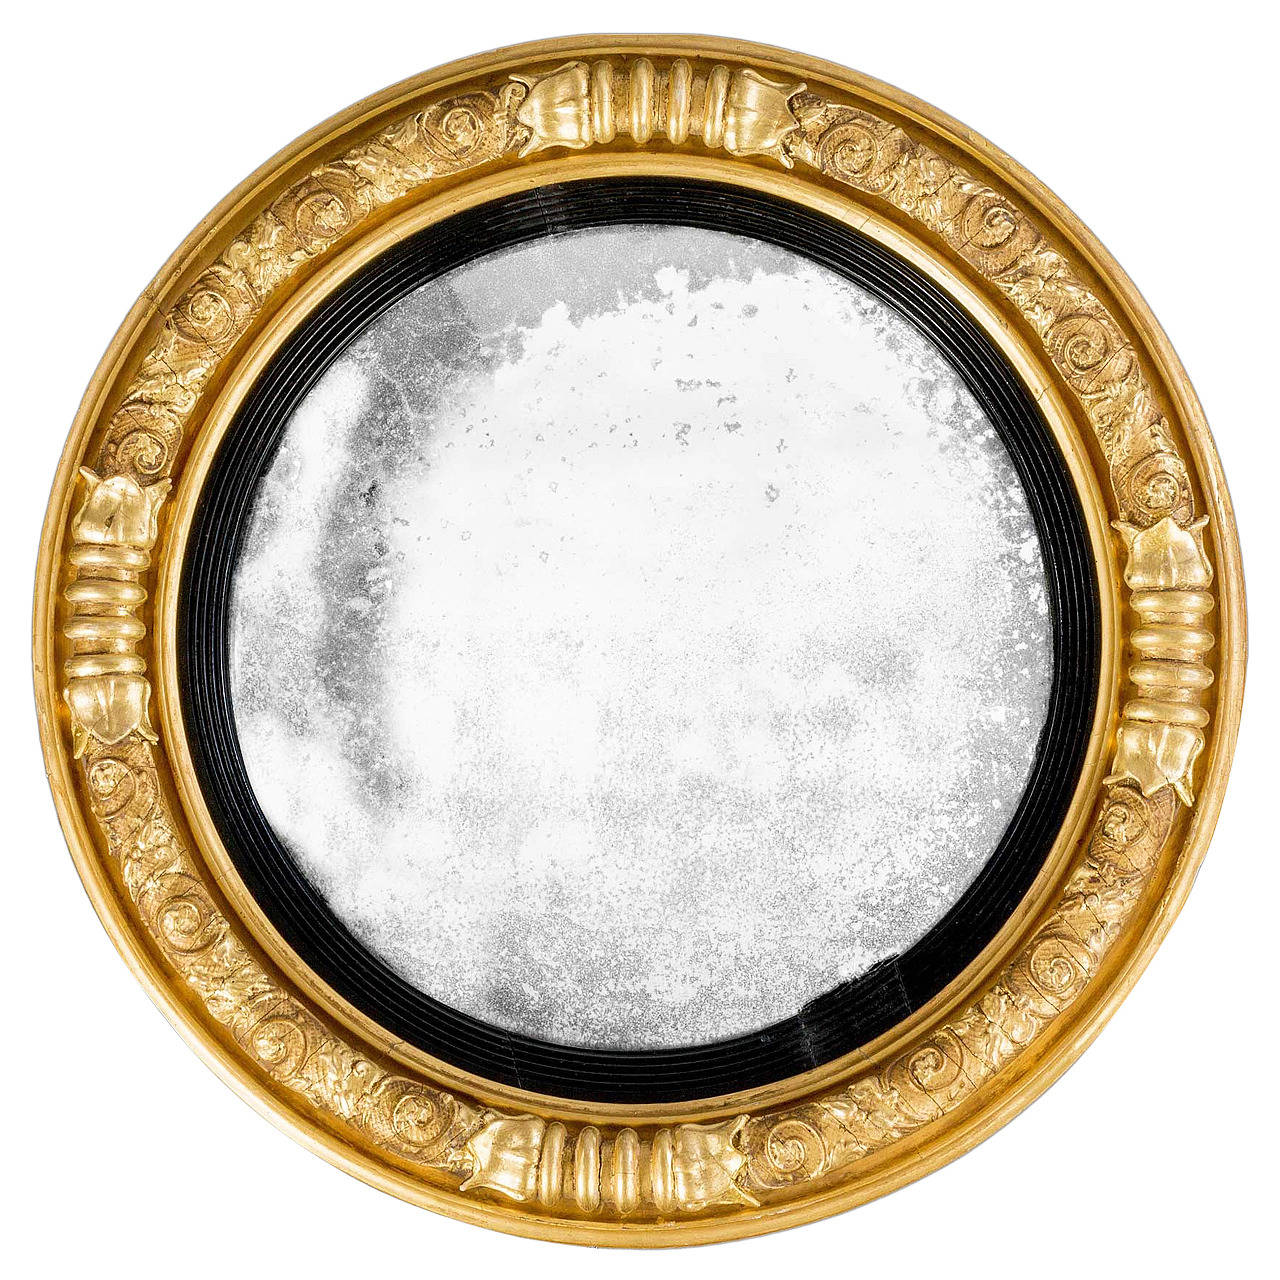 Regency period giltwood convex mirror for sale at 1stdibs for Convex mirror for home